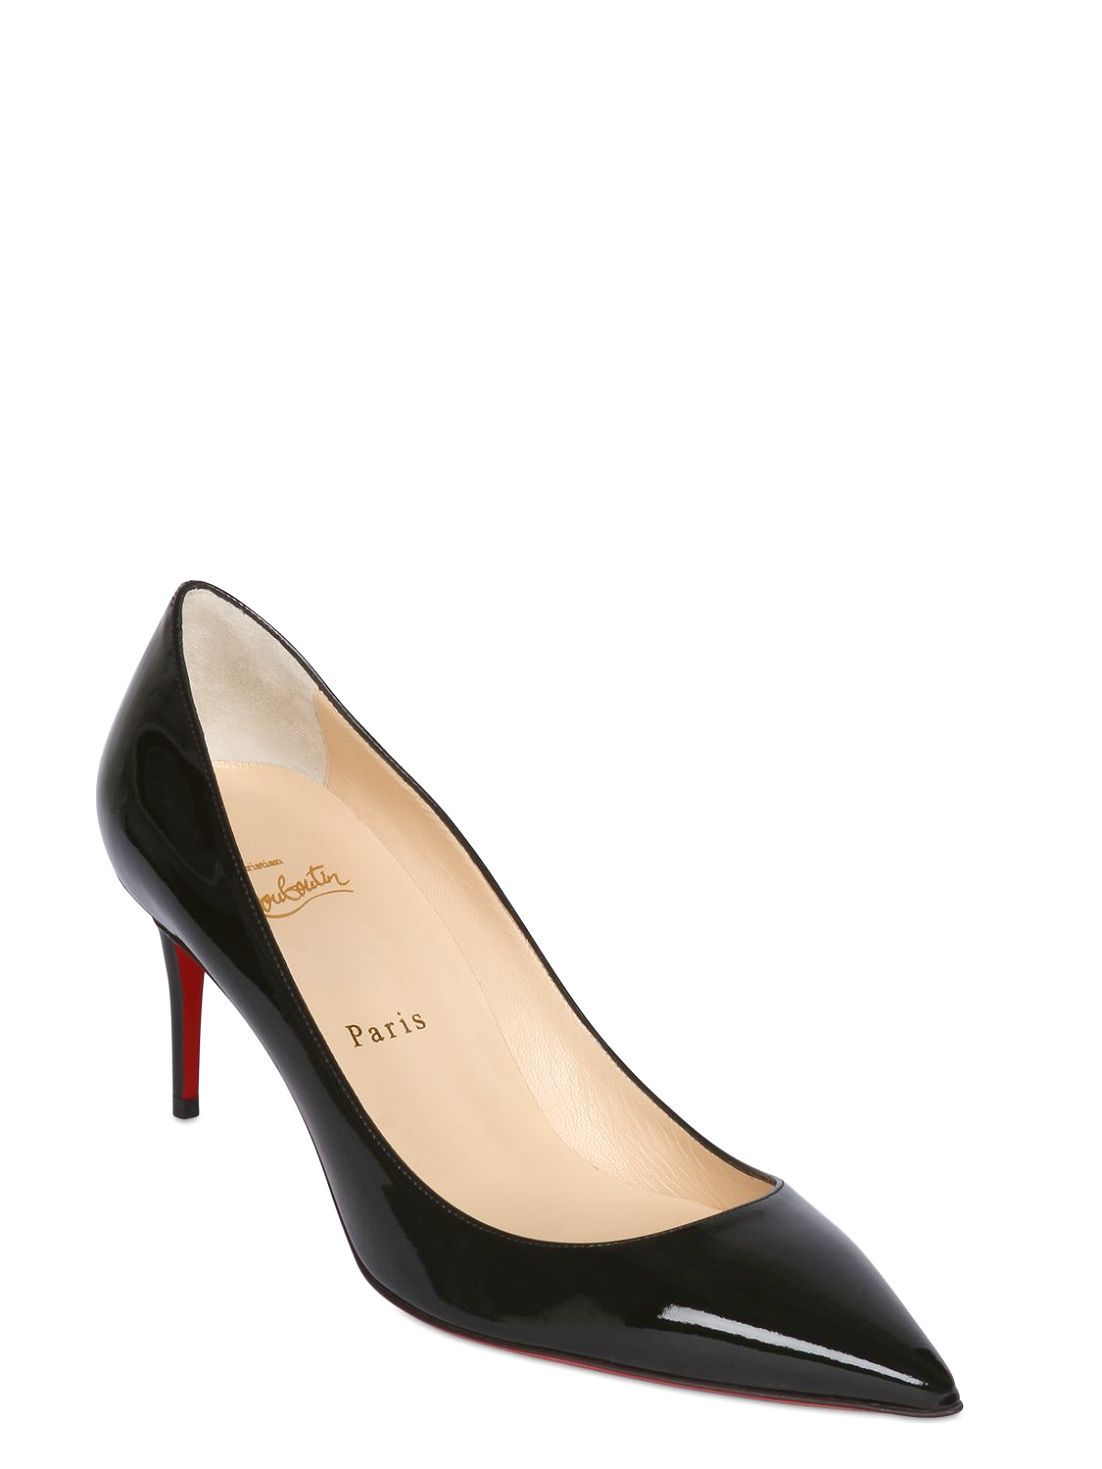 official photos c91d0 f2cf4 CL red bottoms on   Christian louboutin tumblr   Black ...